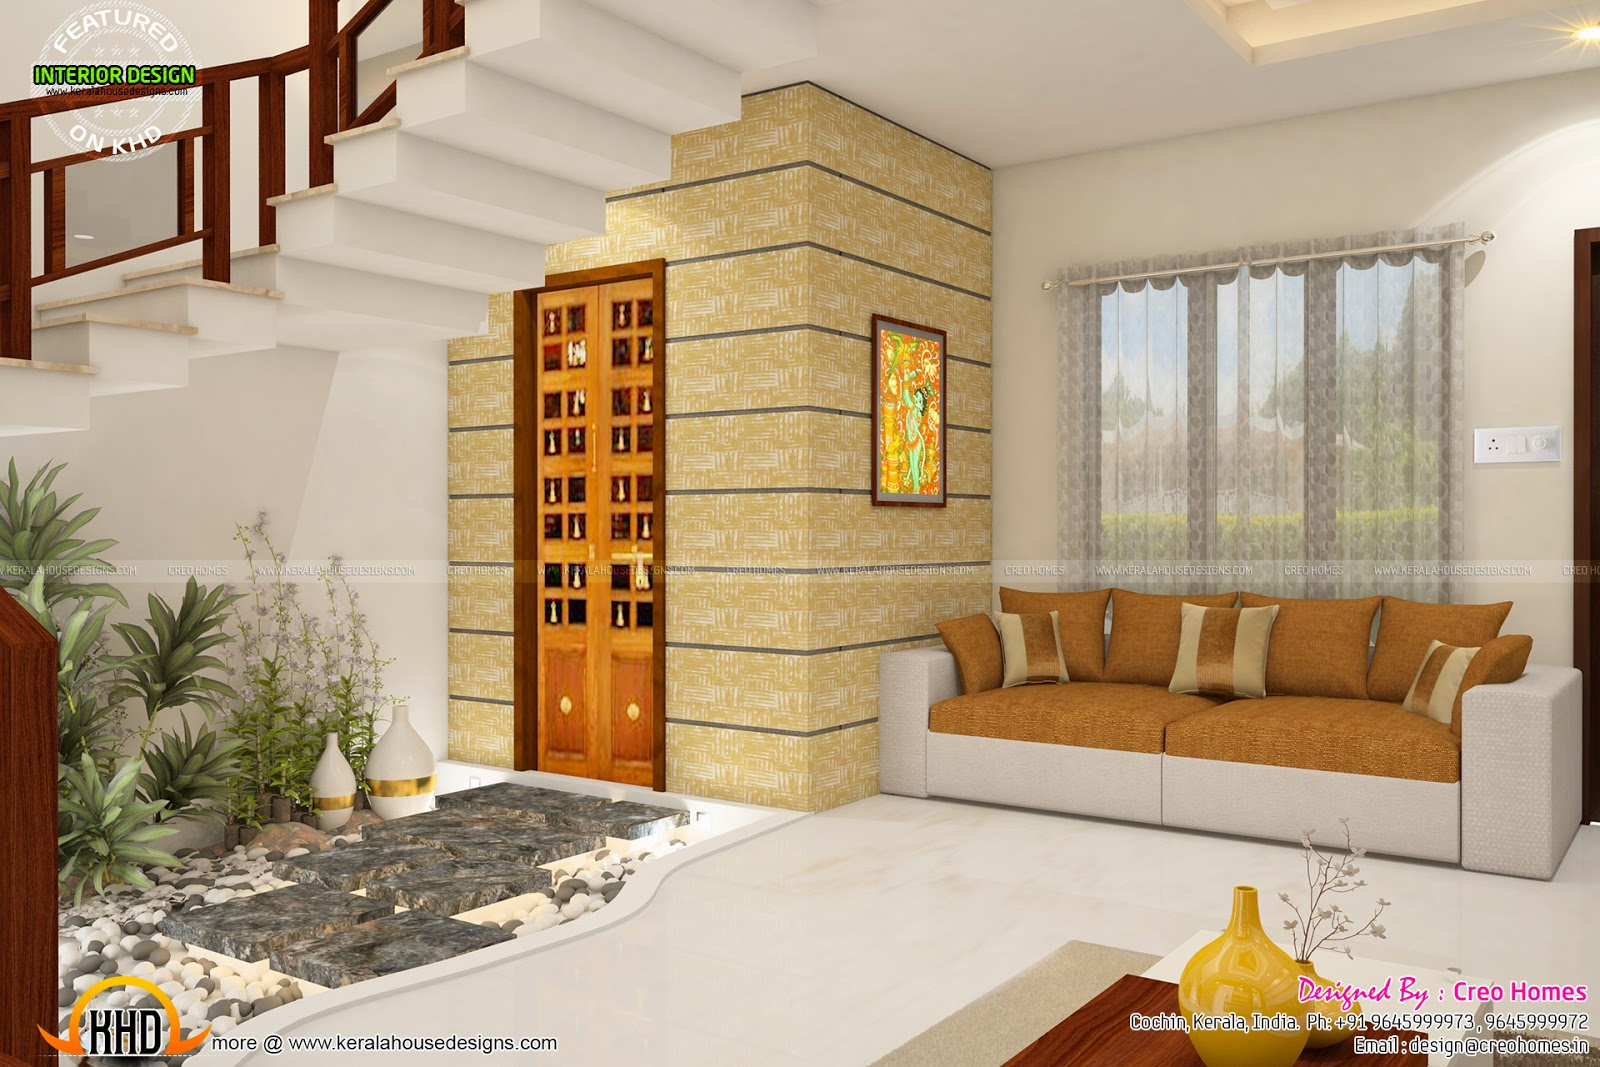 Total home interior solutions by creo homes kerala home for Interior decoration of house